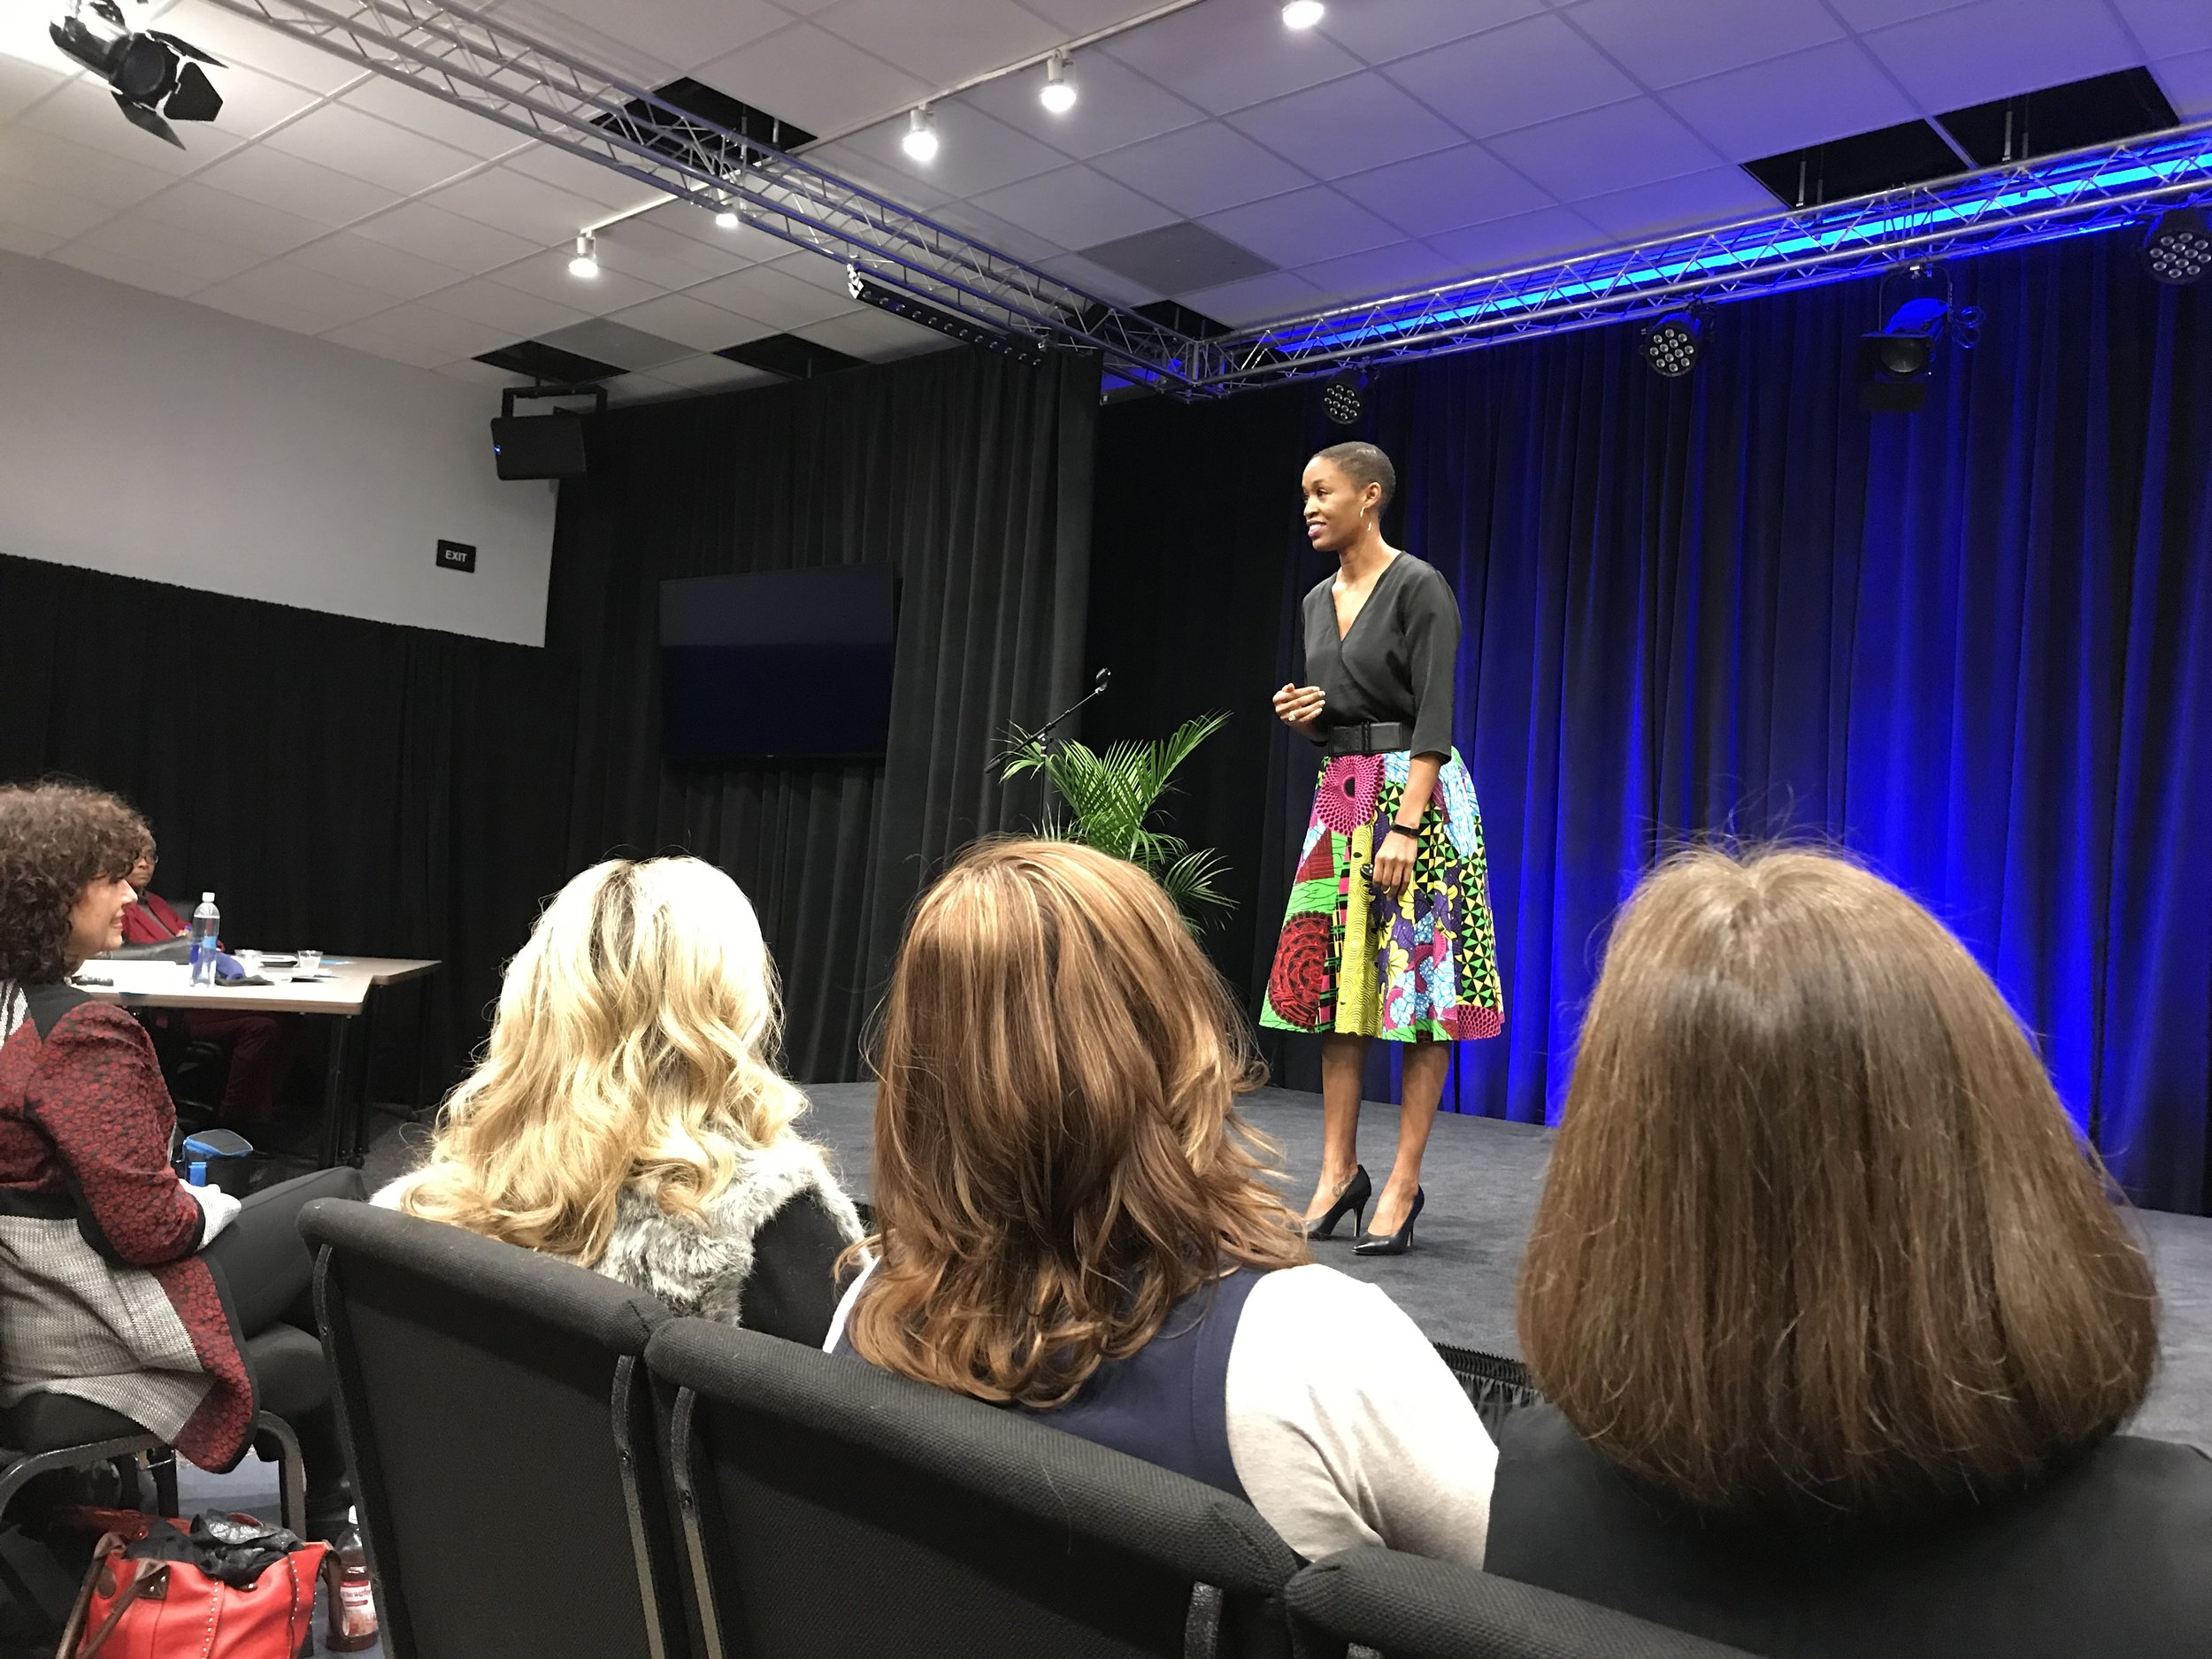 "Why you need a great coach to help you learn - ""Natalie knows what it takes to write and deliver a powerful speech. She helped me break down a keynote speech to get to its purpose. Then, she coached me on how to rebuild it to make it as impactful as possible. She did this with care, honesty and eagerness. My speech is exponentially better after working with Natalie.""-Candace Doby, Keynote Speaker"